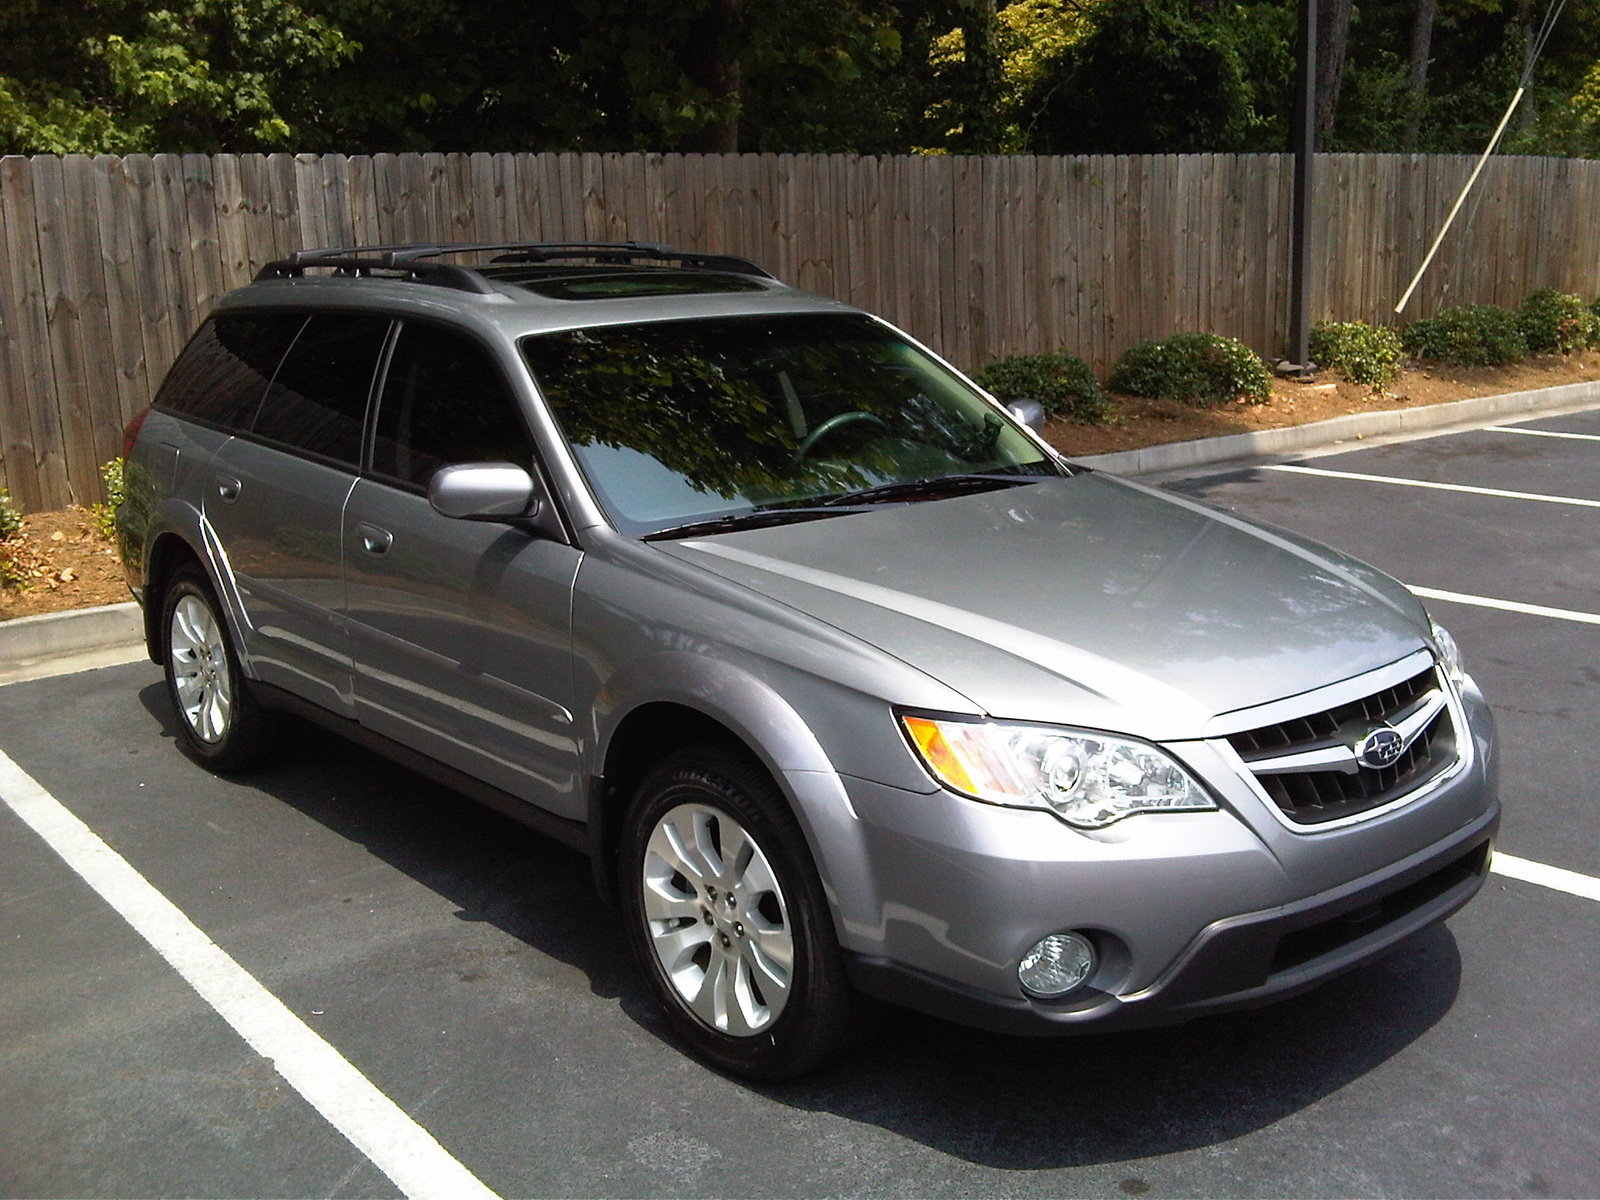 2009 Subaru Outback 2.5i Limited picture